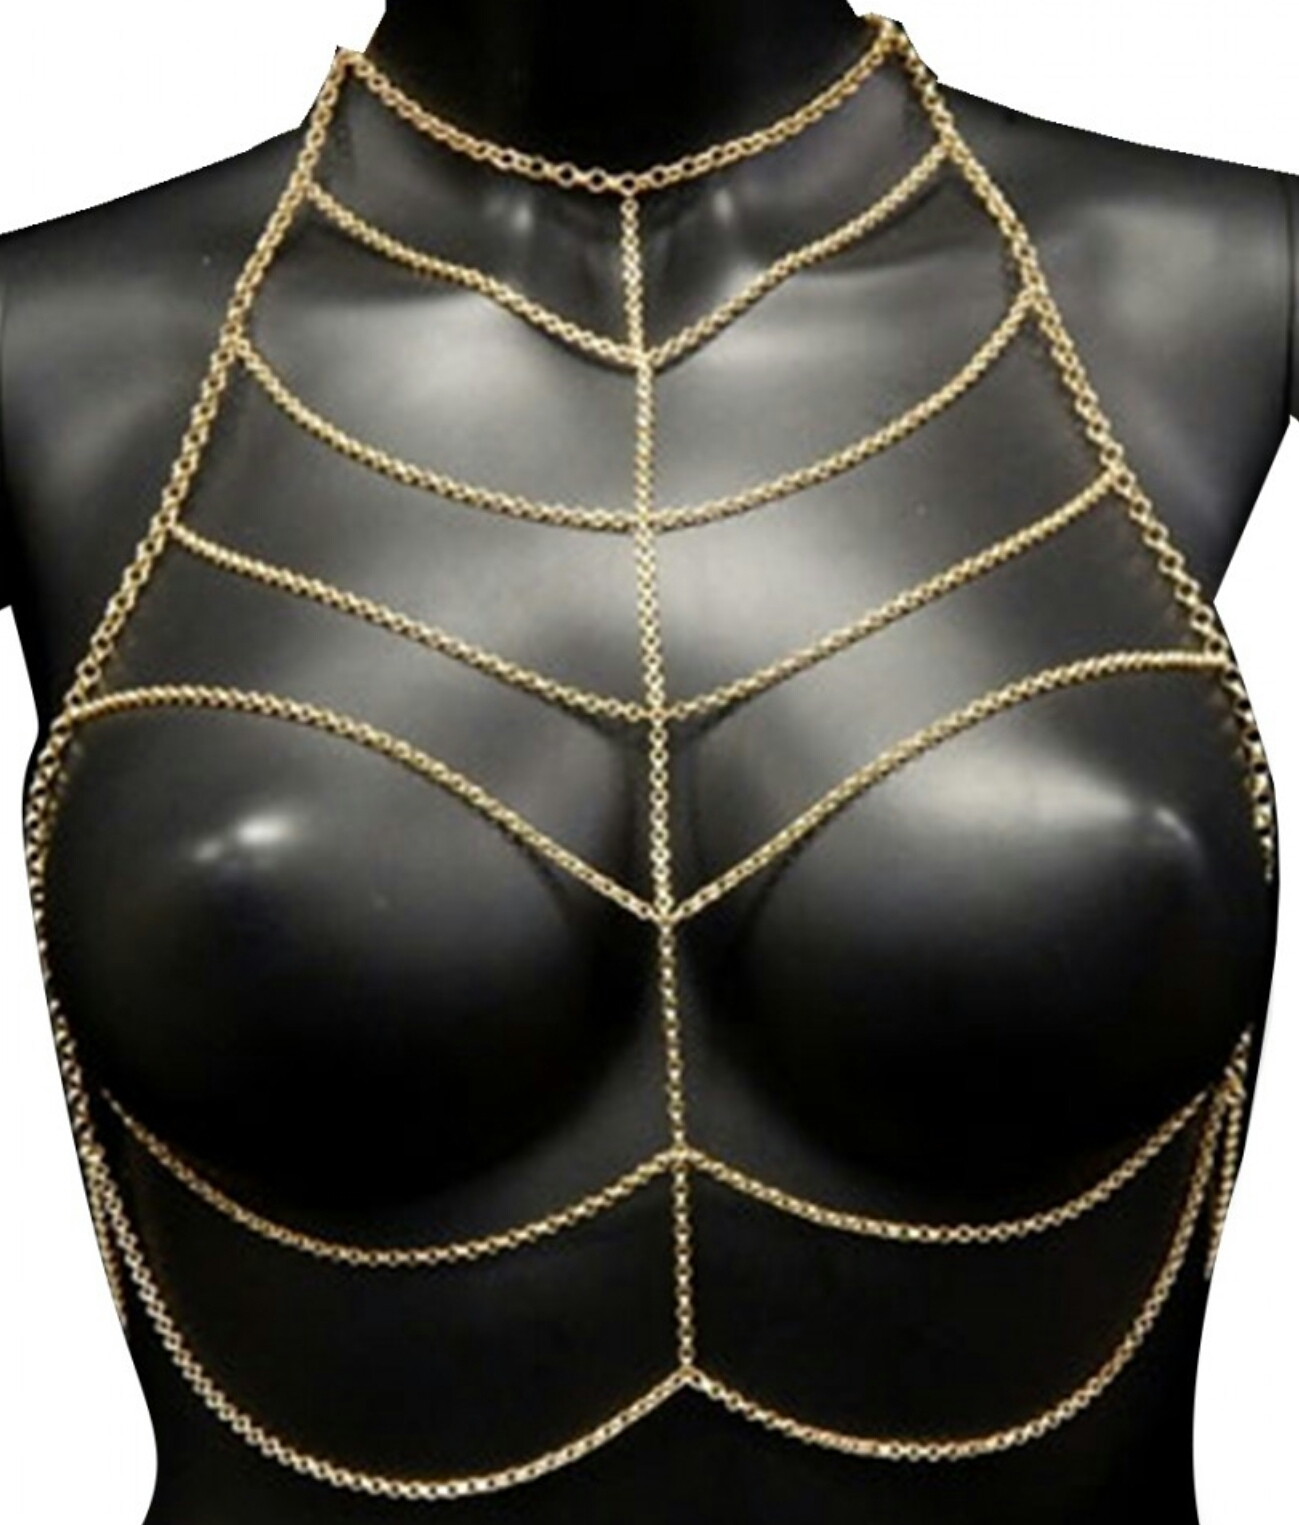 Gold Tone Choker Body Chains Bra Size X-Small/Small